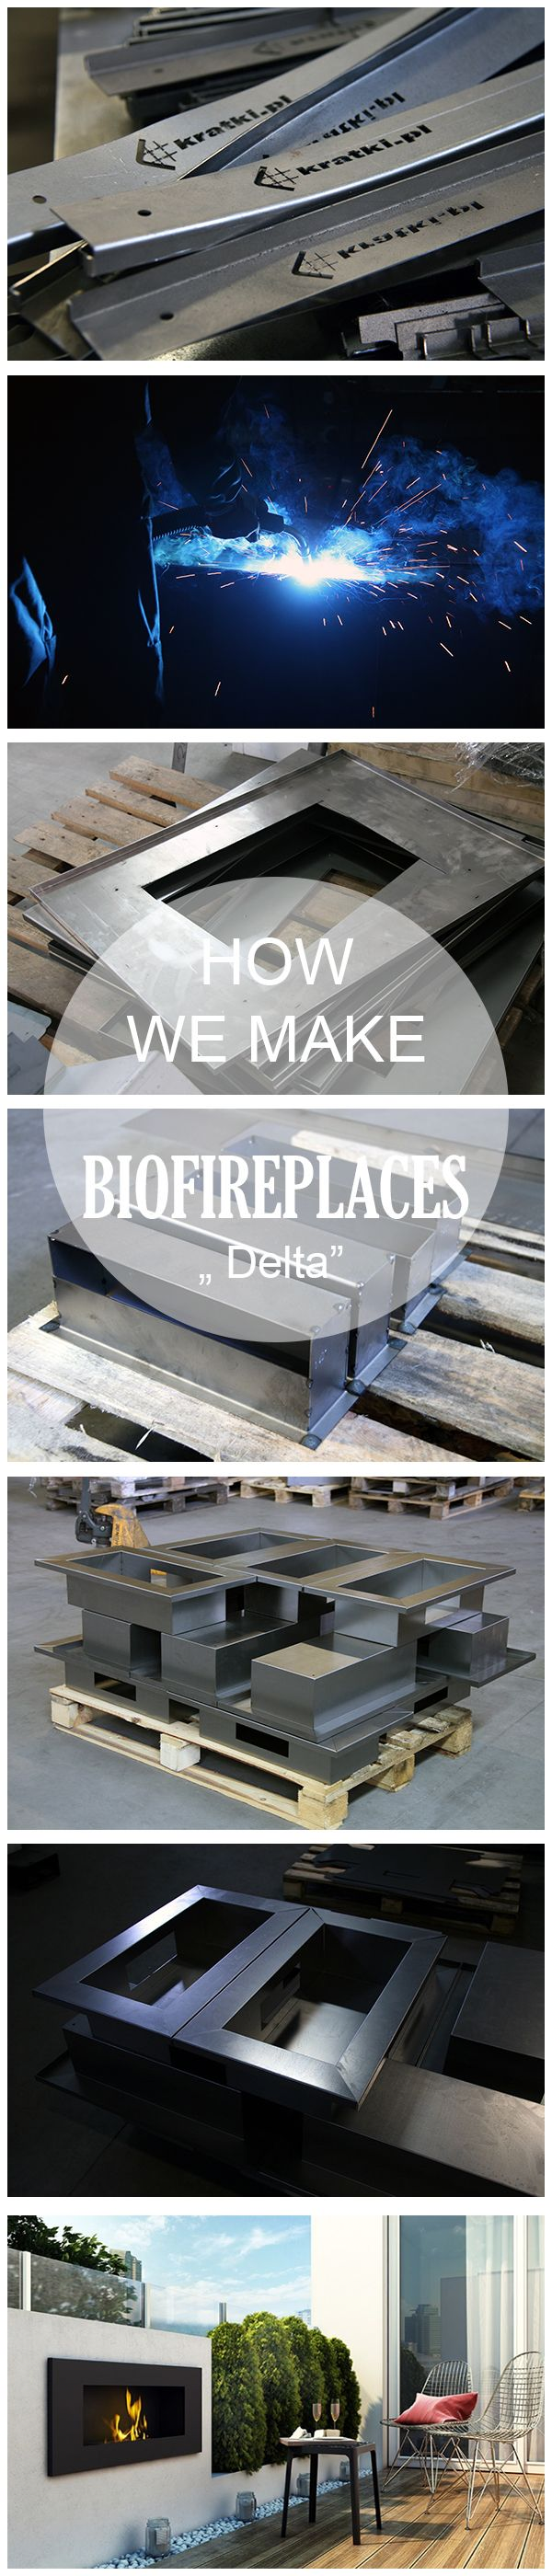 How we produce our biofireplace? Take a look at production steps. Today we show DELTA.